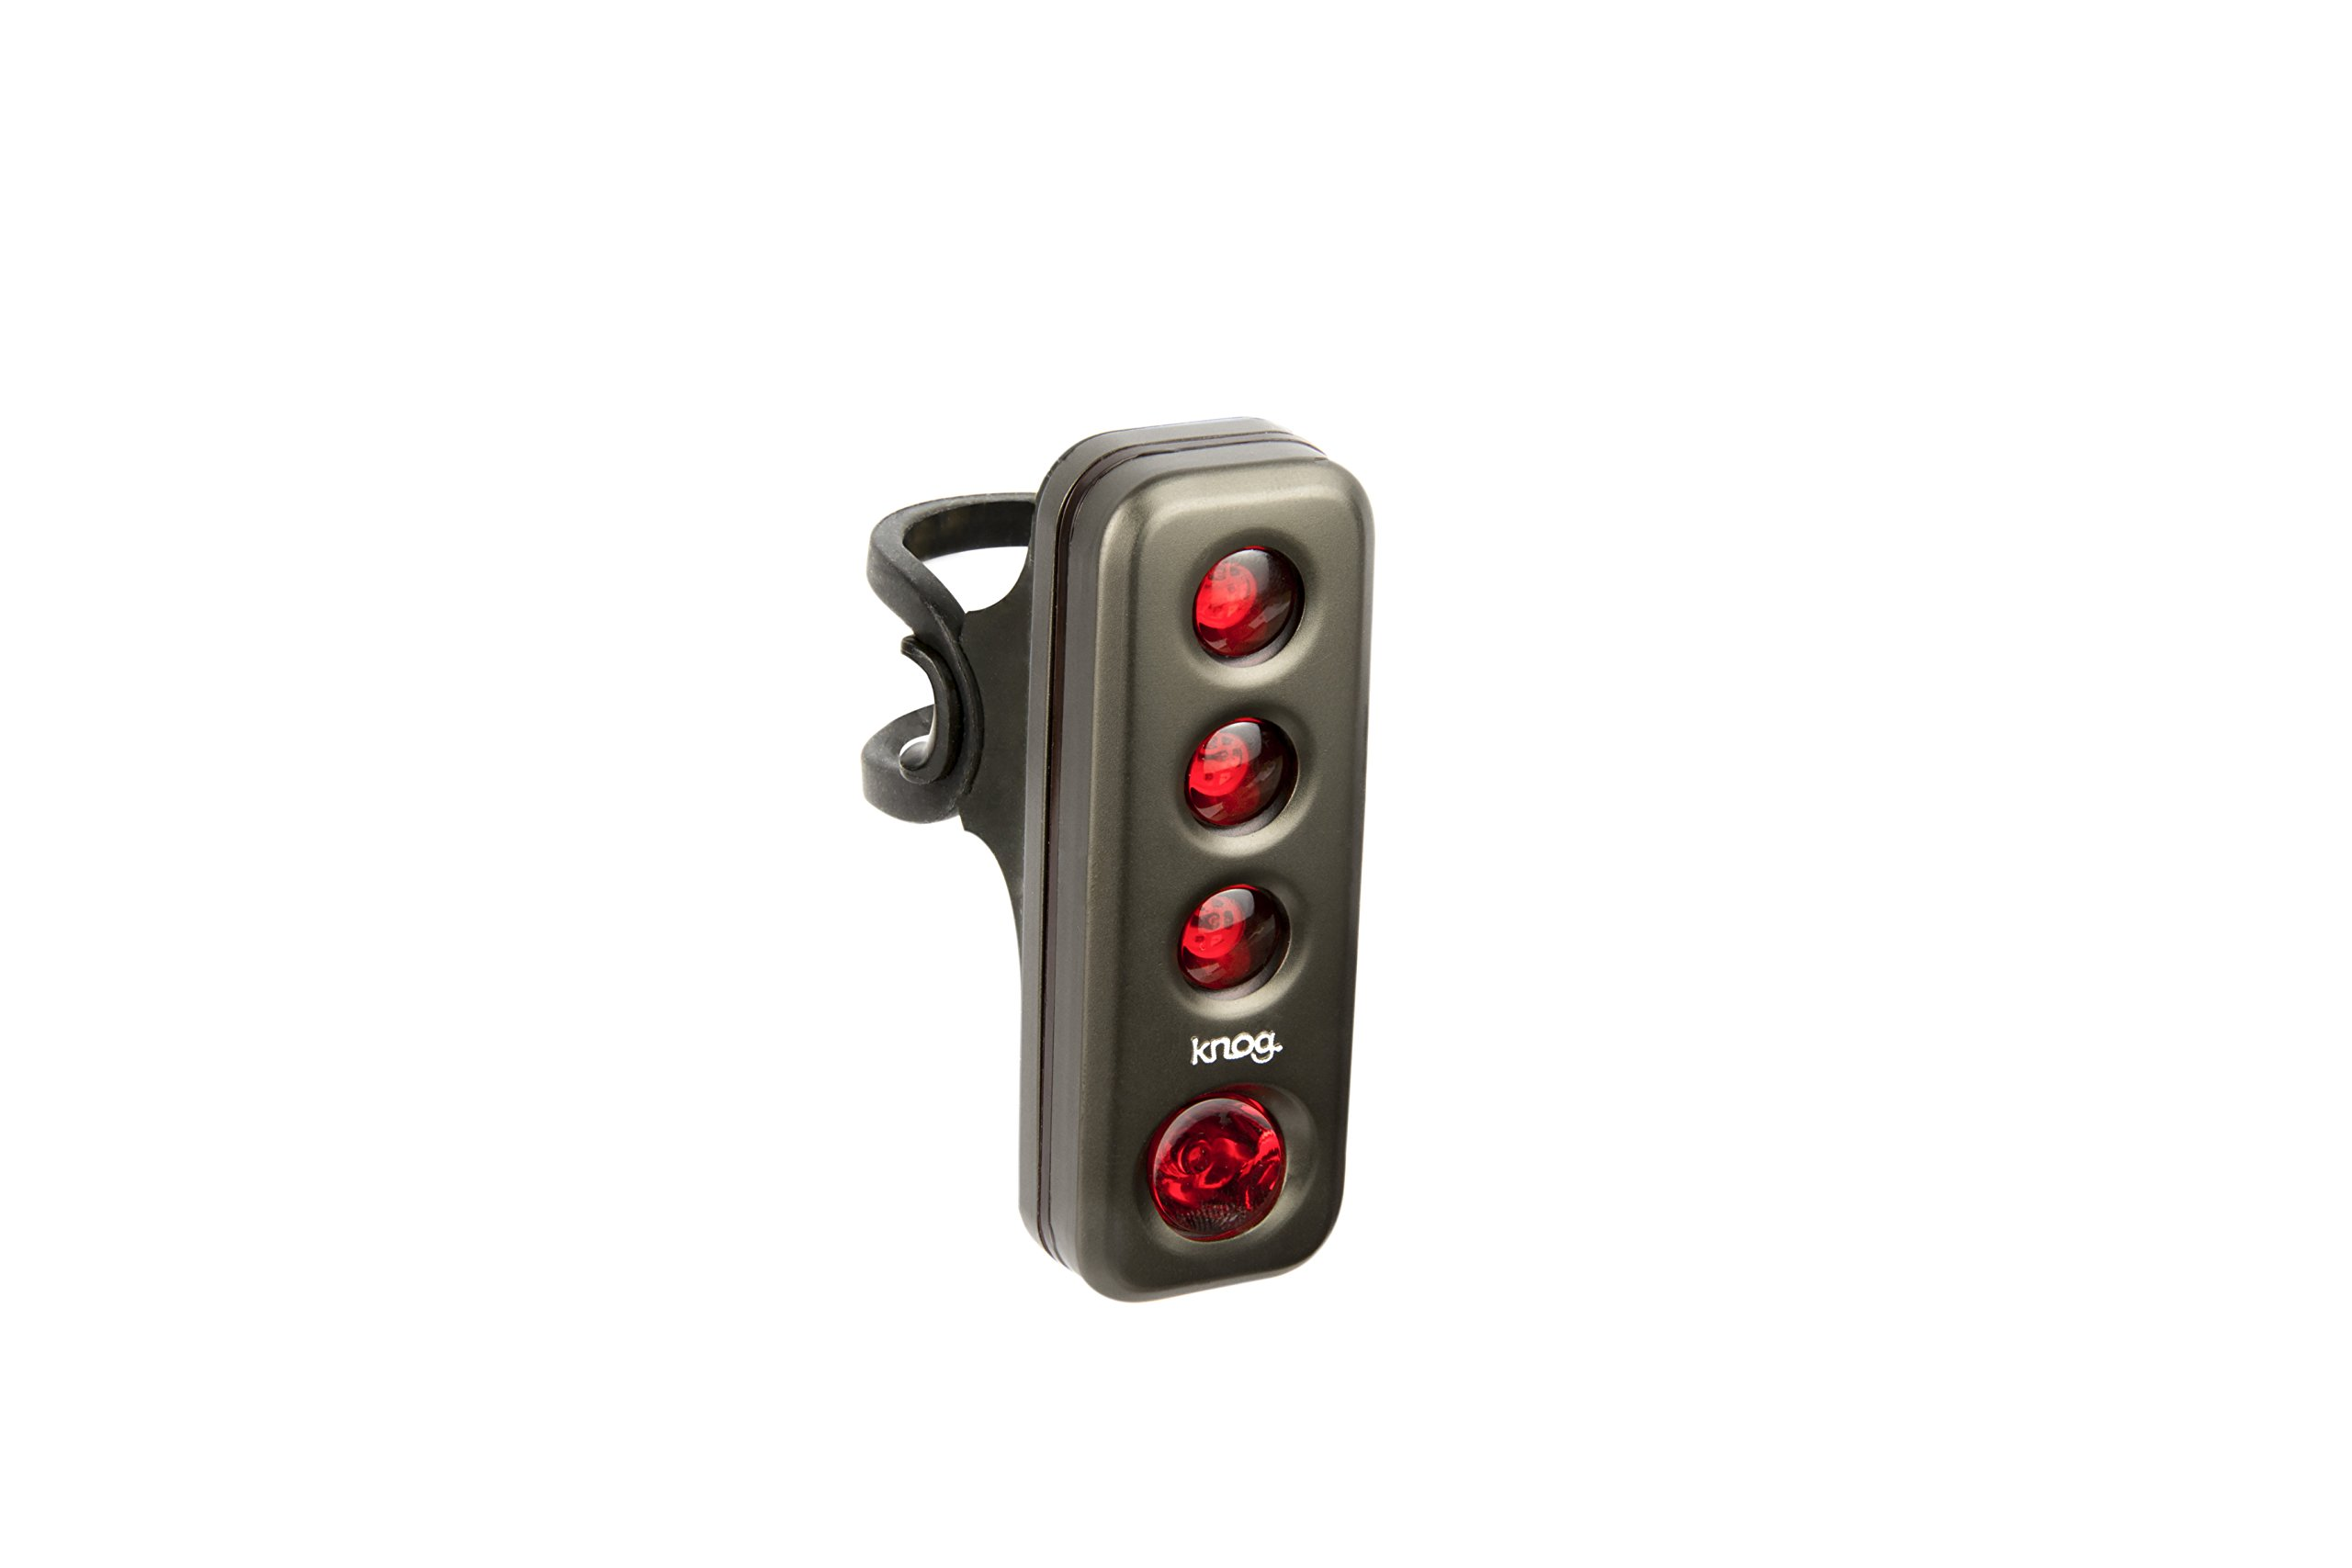 Knog Blinder Road R70 Taillight- Pewter, USB Rechargeable, LED, Water Resistant, Commuter Friendly, Easy Mounting, Battery Saving, Performance Cycling Bike Light by KNOG